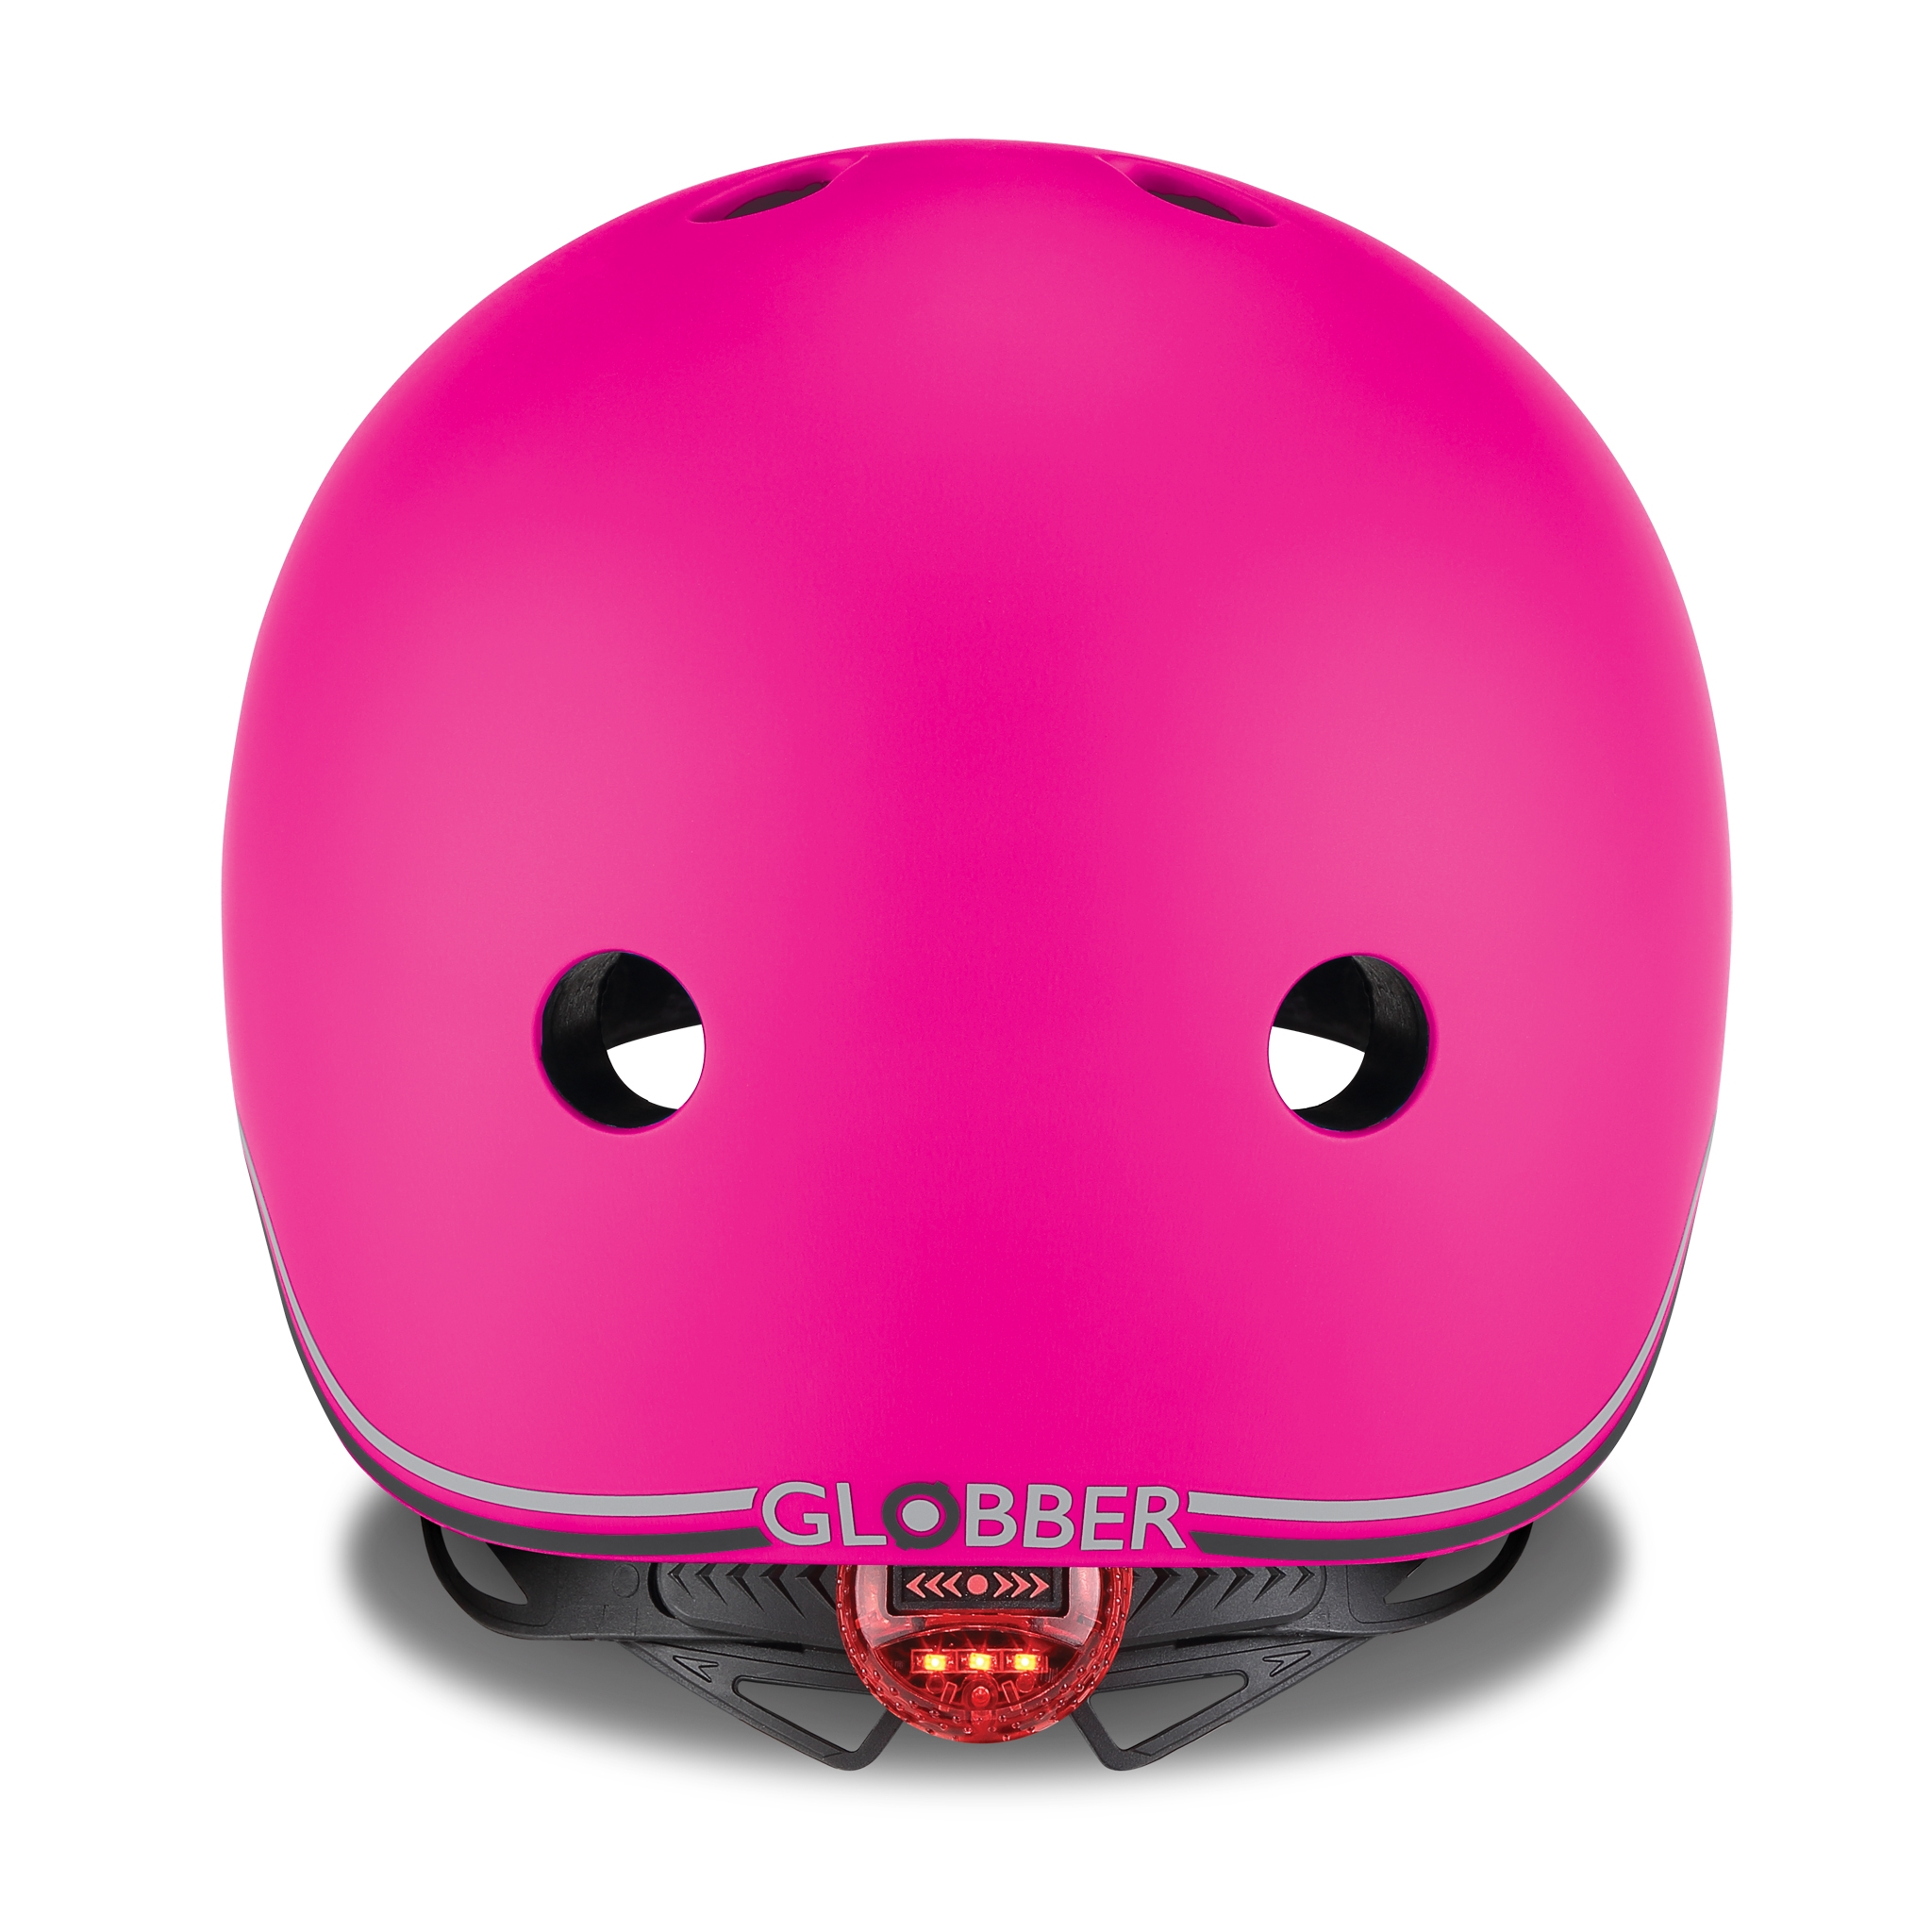 EVO-helmets-scooter-helmets-for-toddlers-with-LED-lights-safe-helmet-for-toddlers-neon-pink